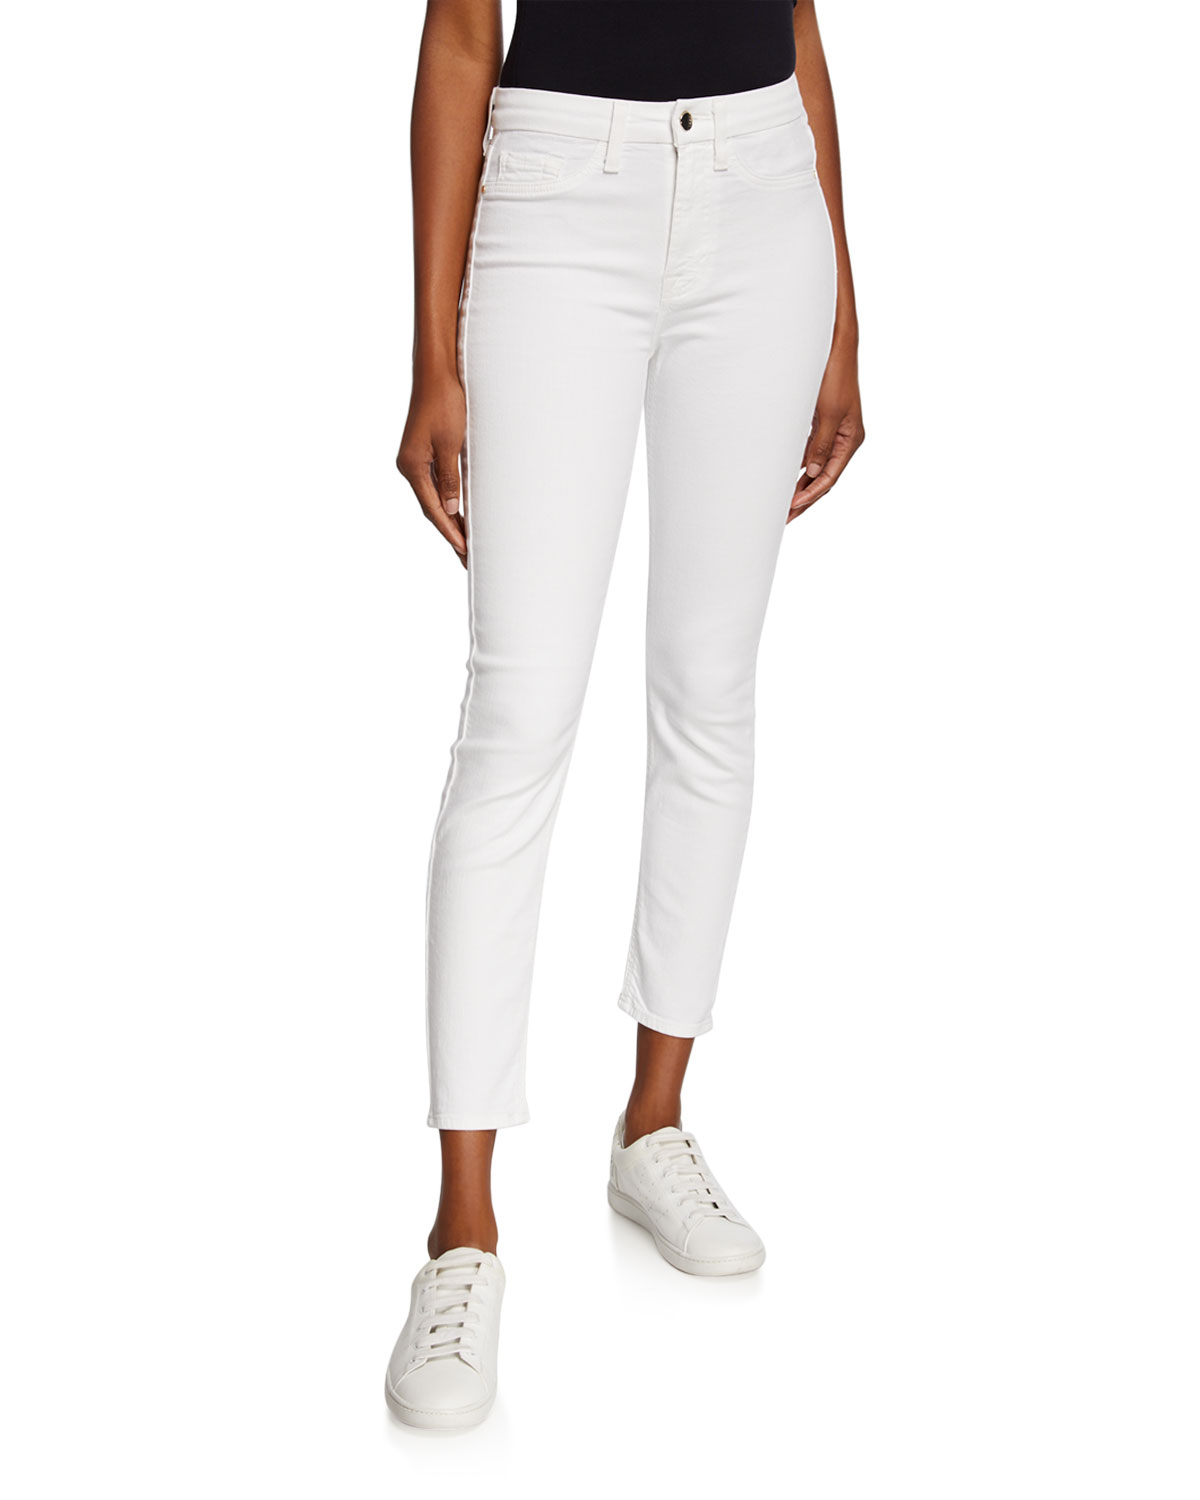 be45c074866 Jen7 by 7 for All Mankind Mid-Rise Cropped Ankle Skinny Jeans ...